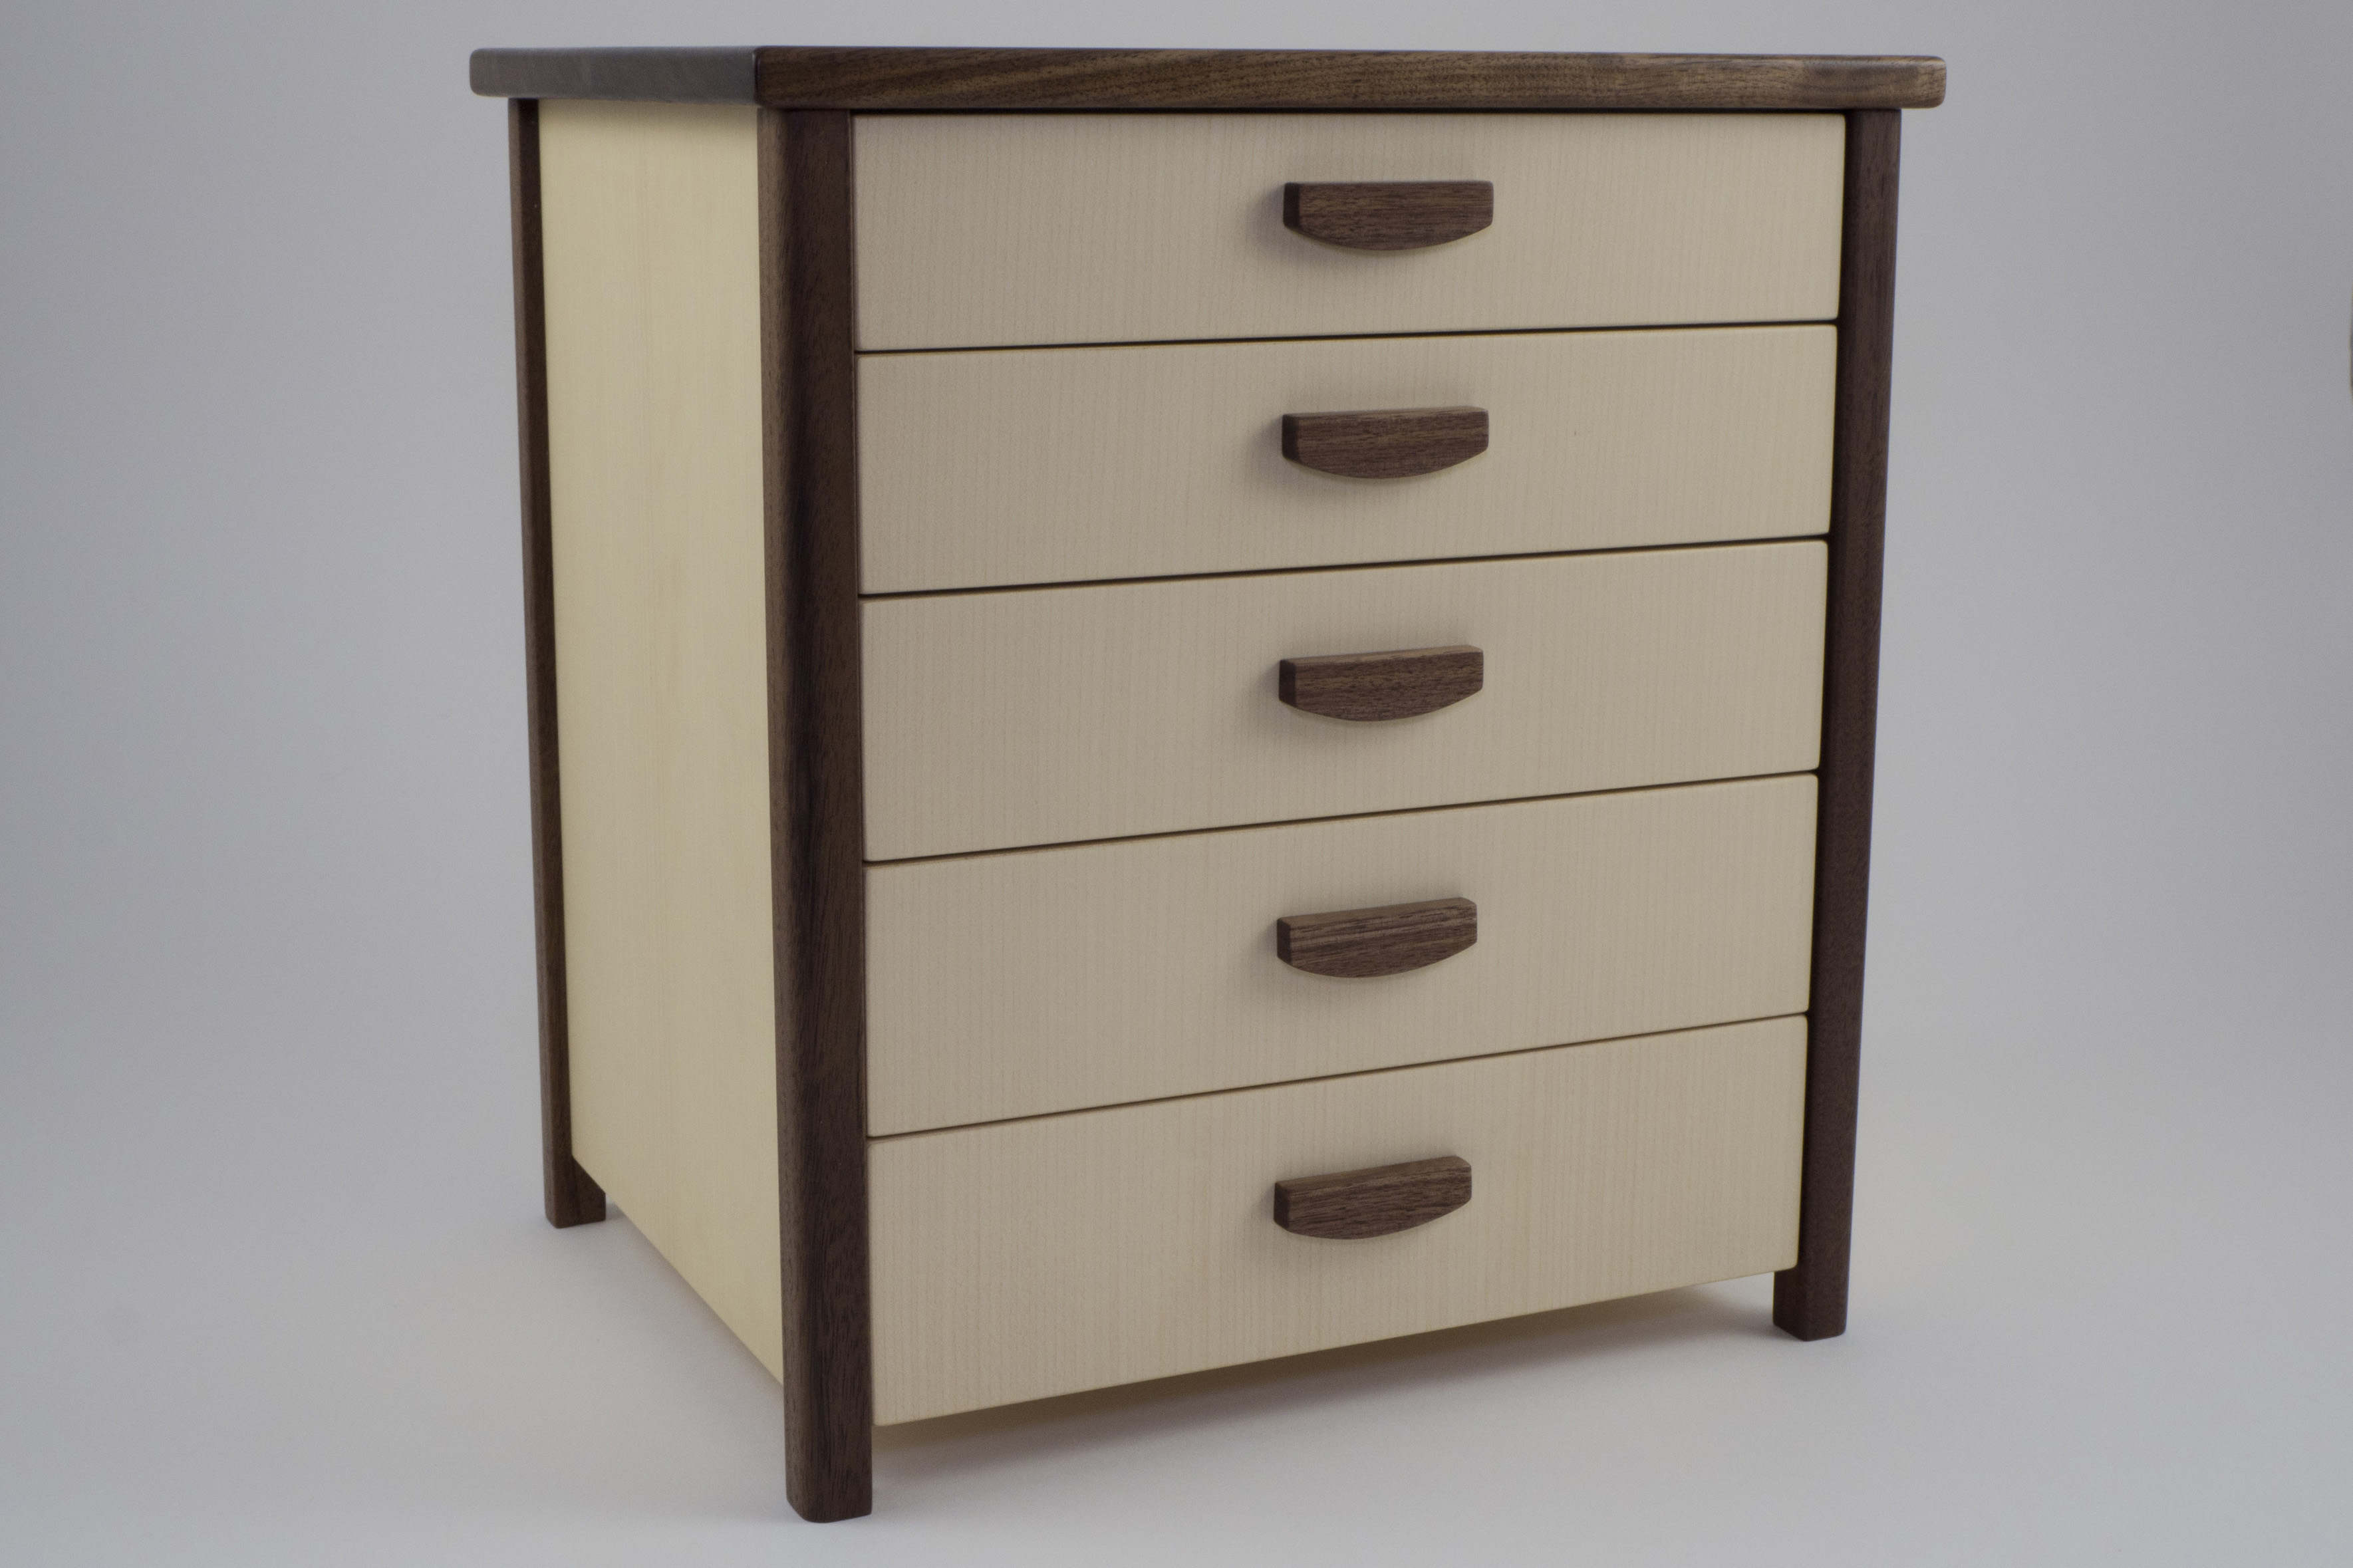 Sycamore jewellery chest